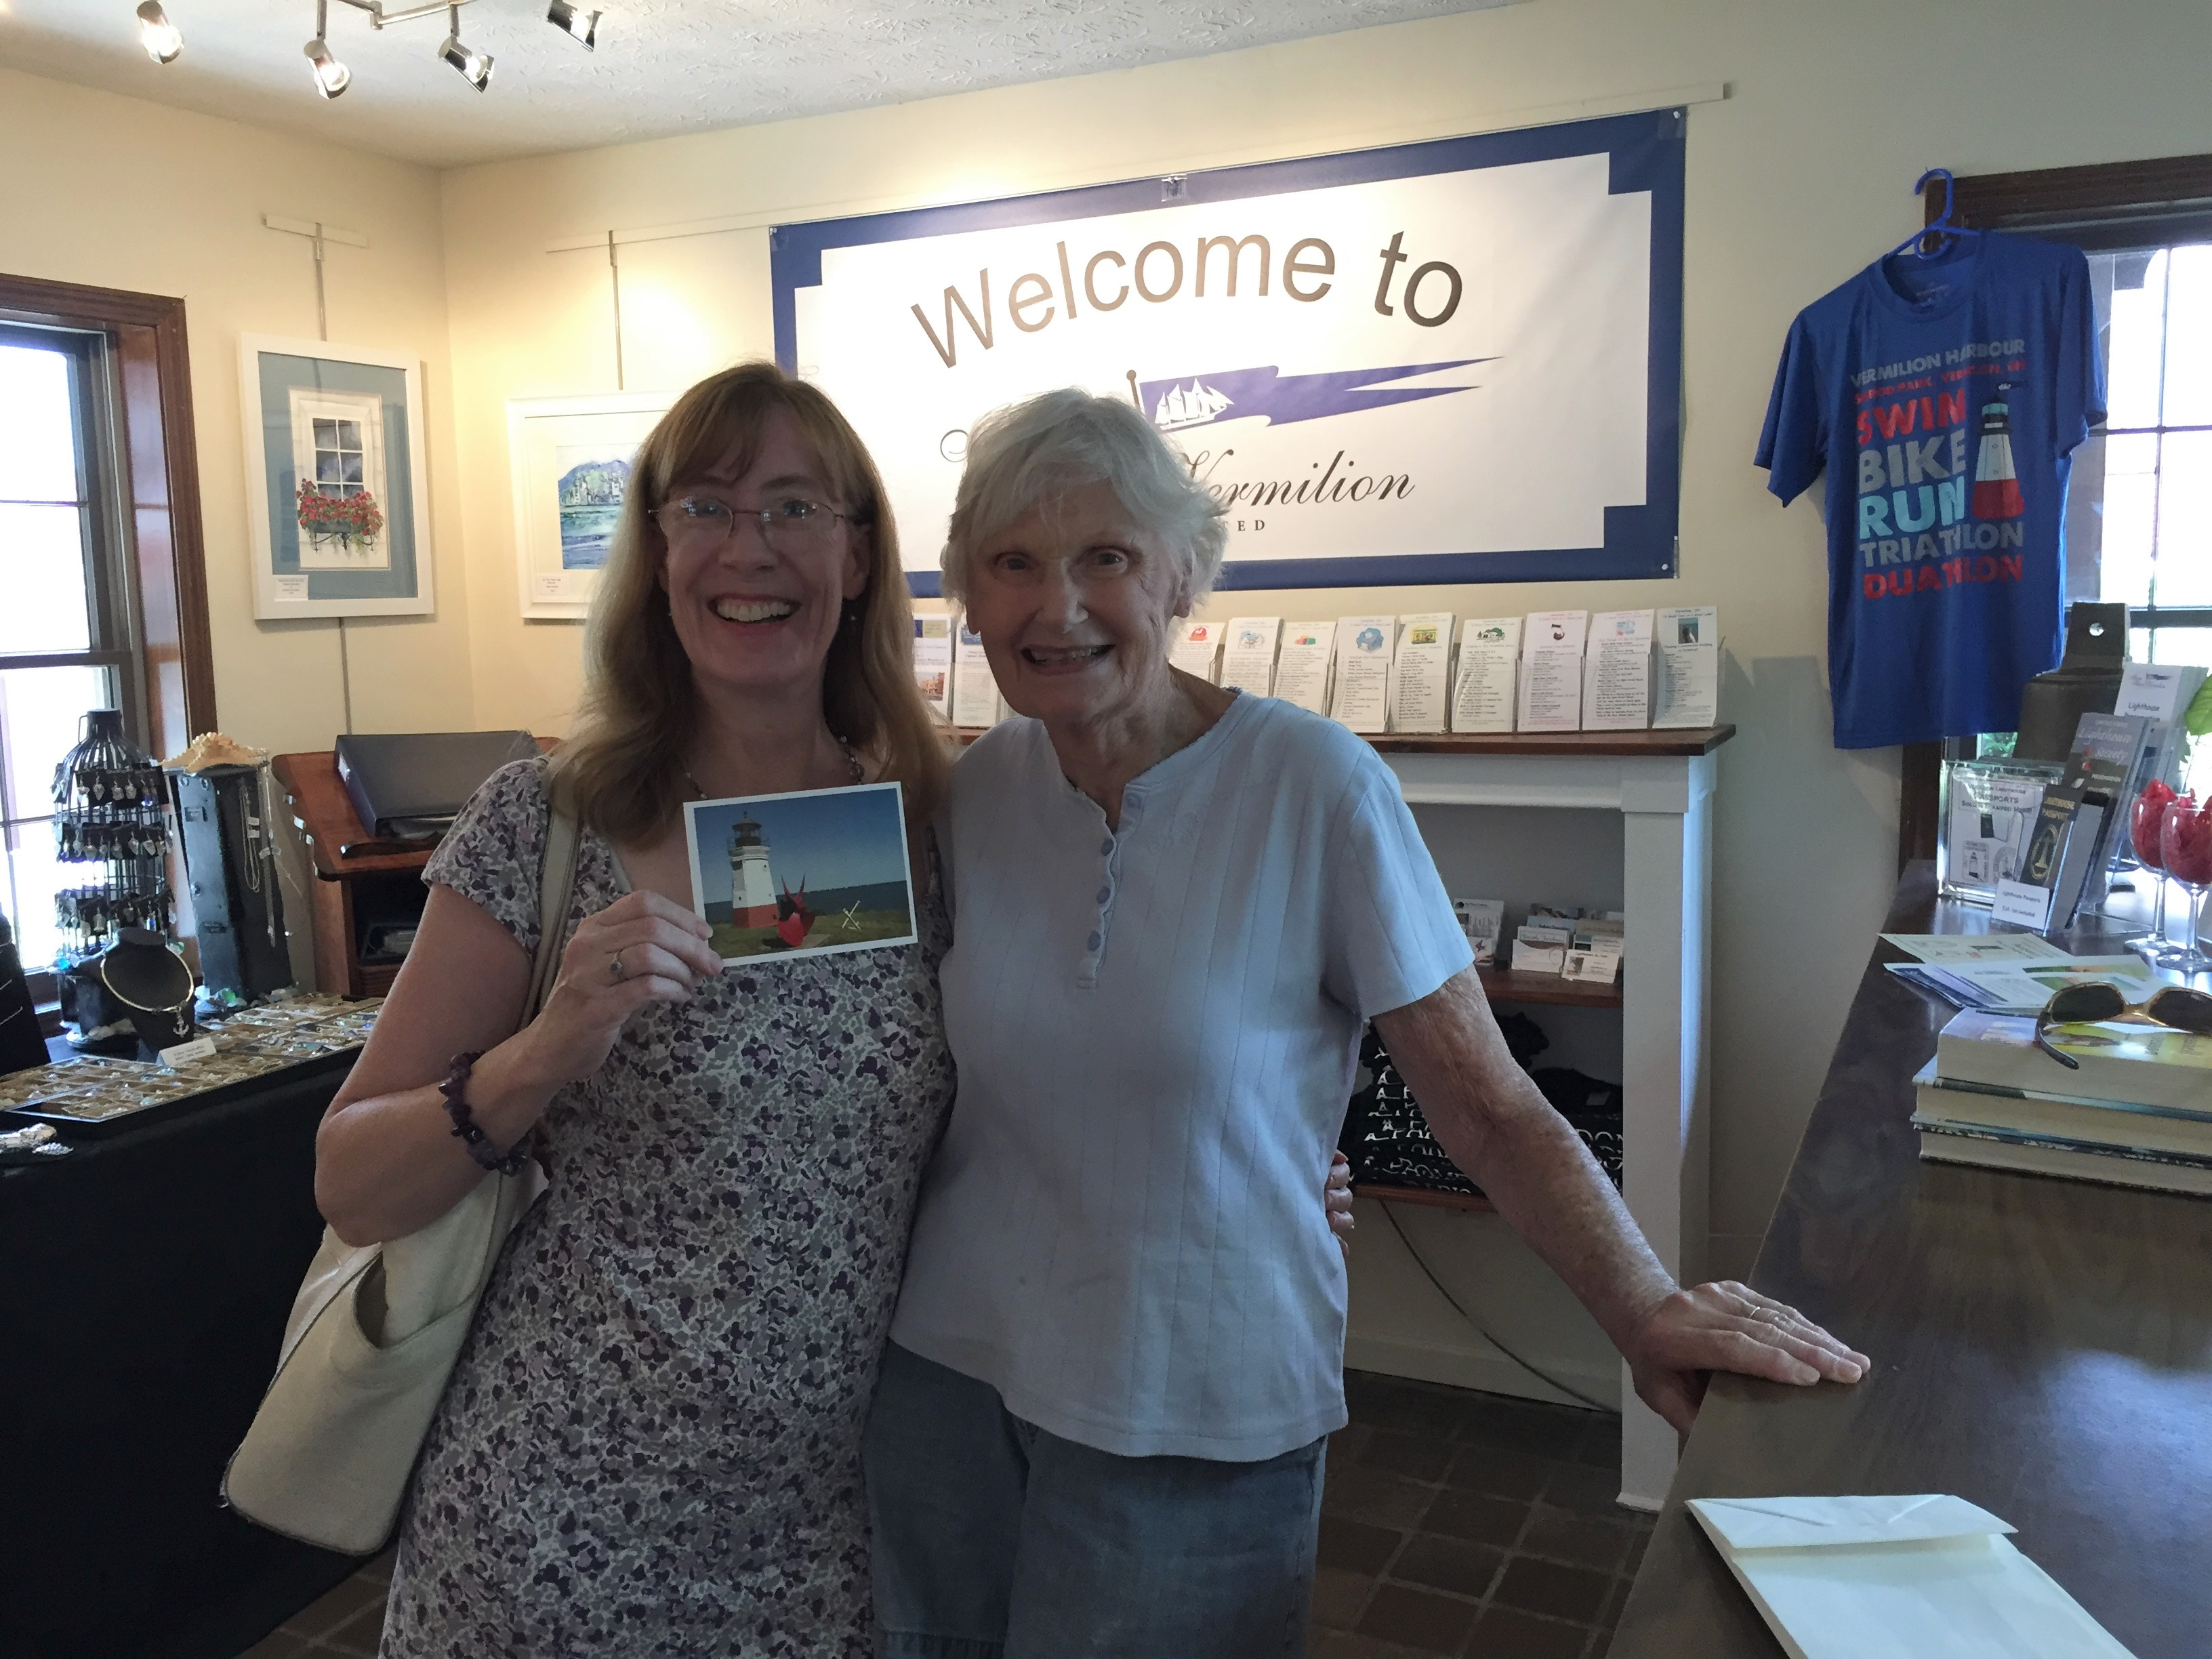 Inside the visitor center/art gallery in Vermilion, Ohio, with a sweet Vermilion native!